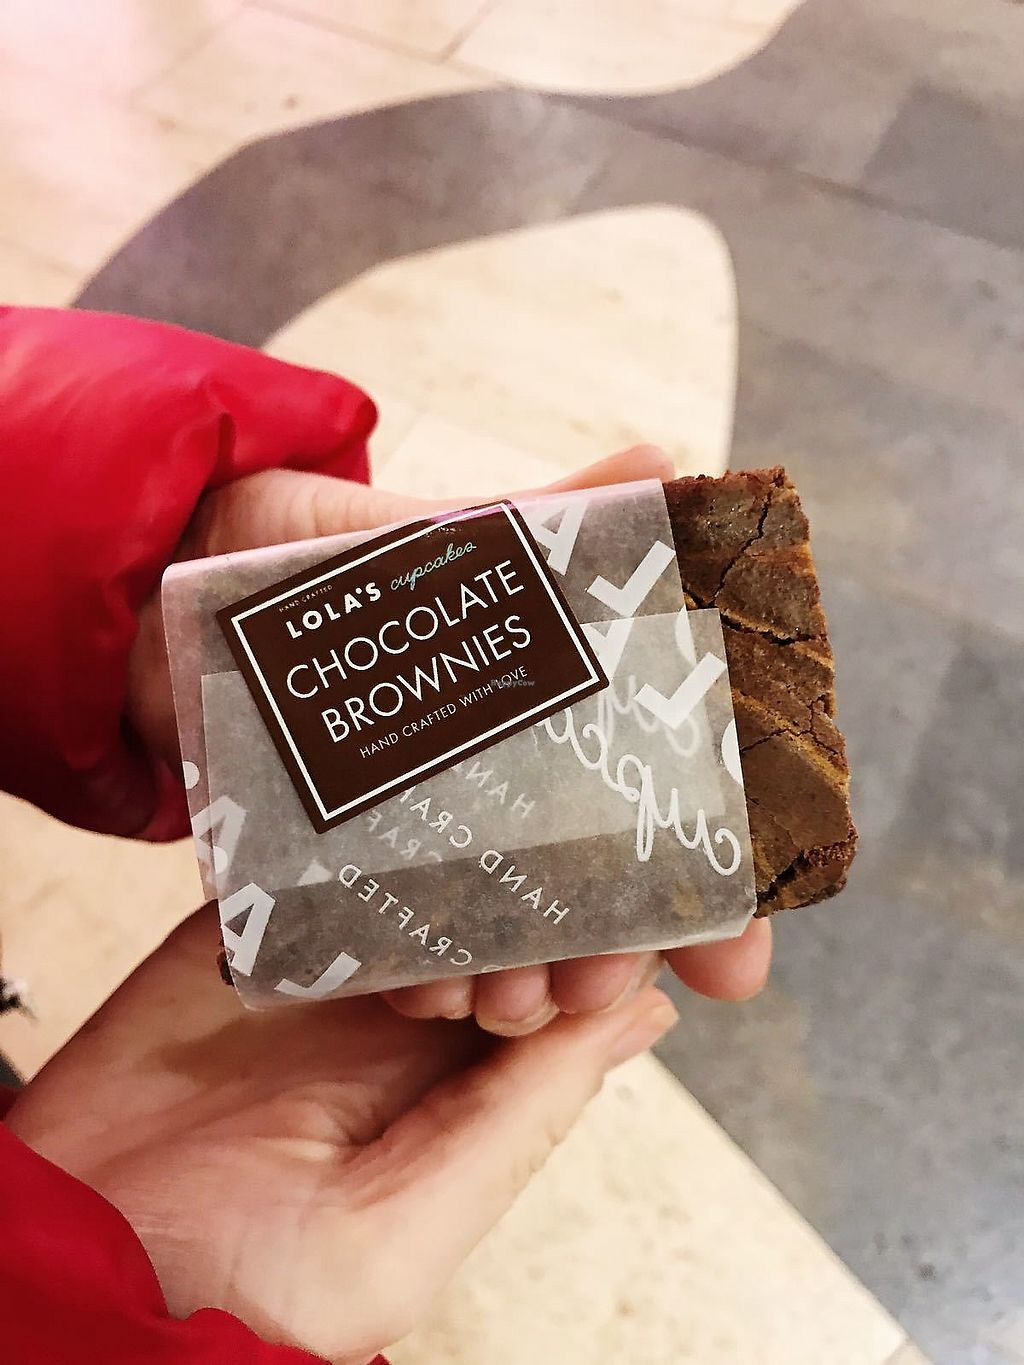 """Photo of Lola's Cupcakes  by <a href=""""/members/profile/TARAMCDONALD"""">TARAMCDONALD</a> <br/>The most amazing chocolate brownie from another angle lol <br/> January 17, 2018  - <a href='/contact/abuse/image/109634/347504'>Report</a>"""